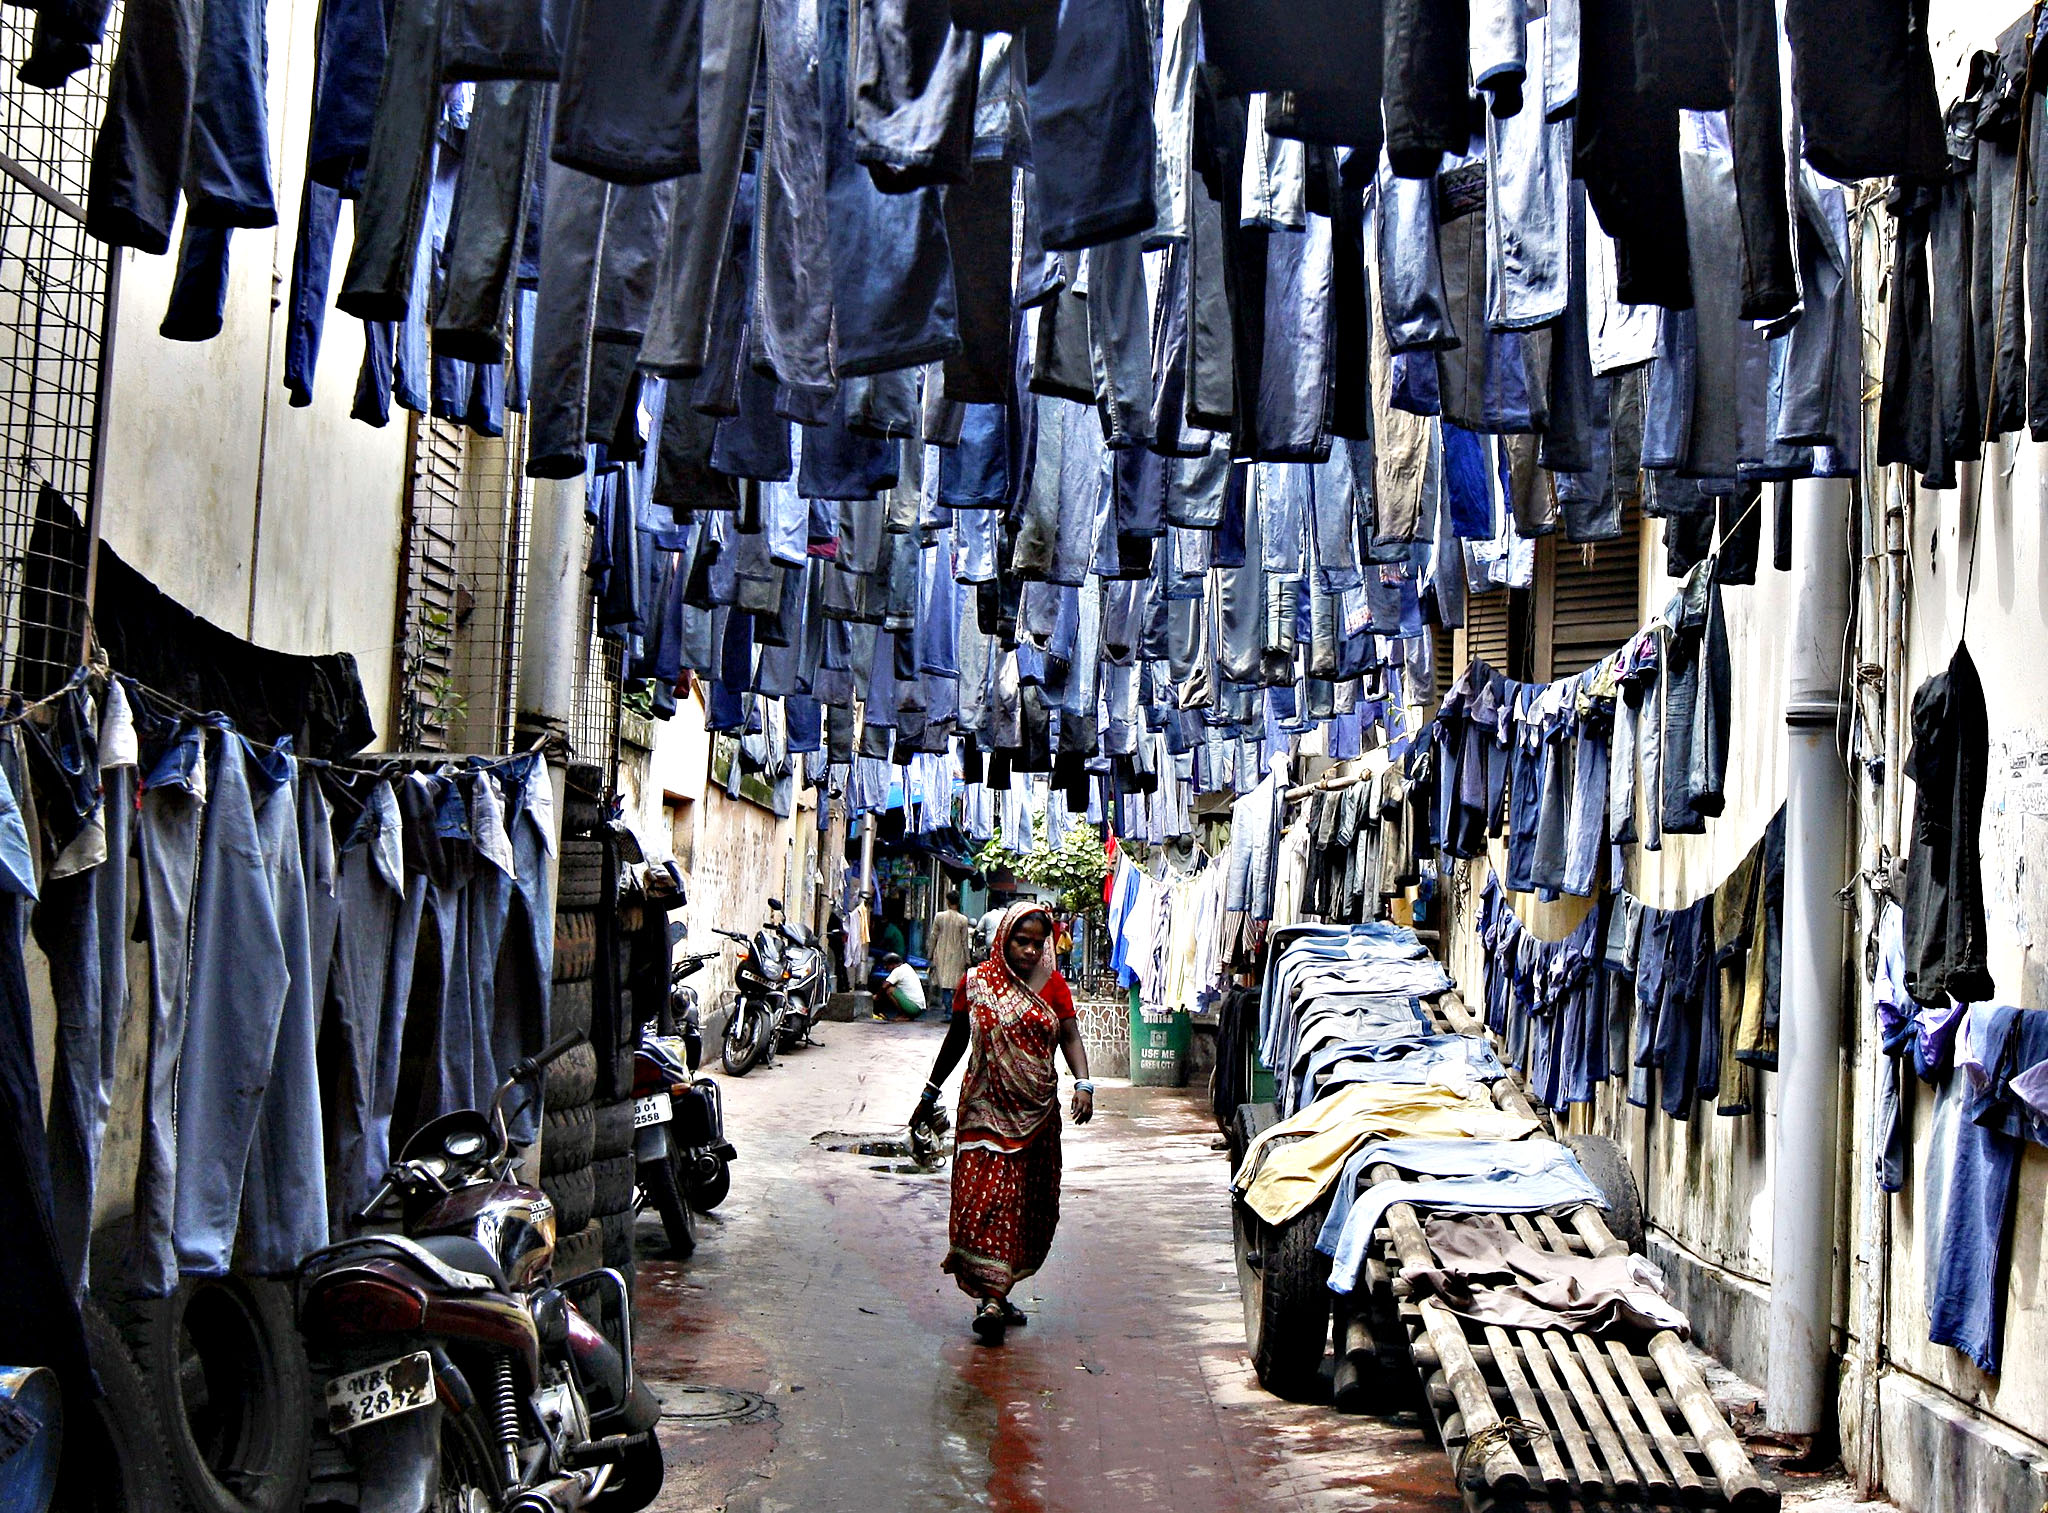 A woman walks through an alley as used pairs of jeans are hung to dry before they are sold in a second-hand clothes market in Kolkata, India, June 29, 2015